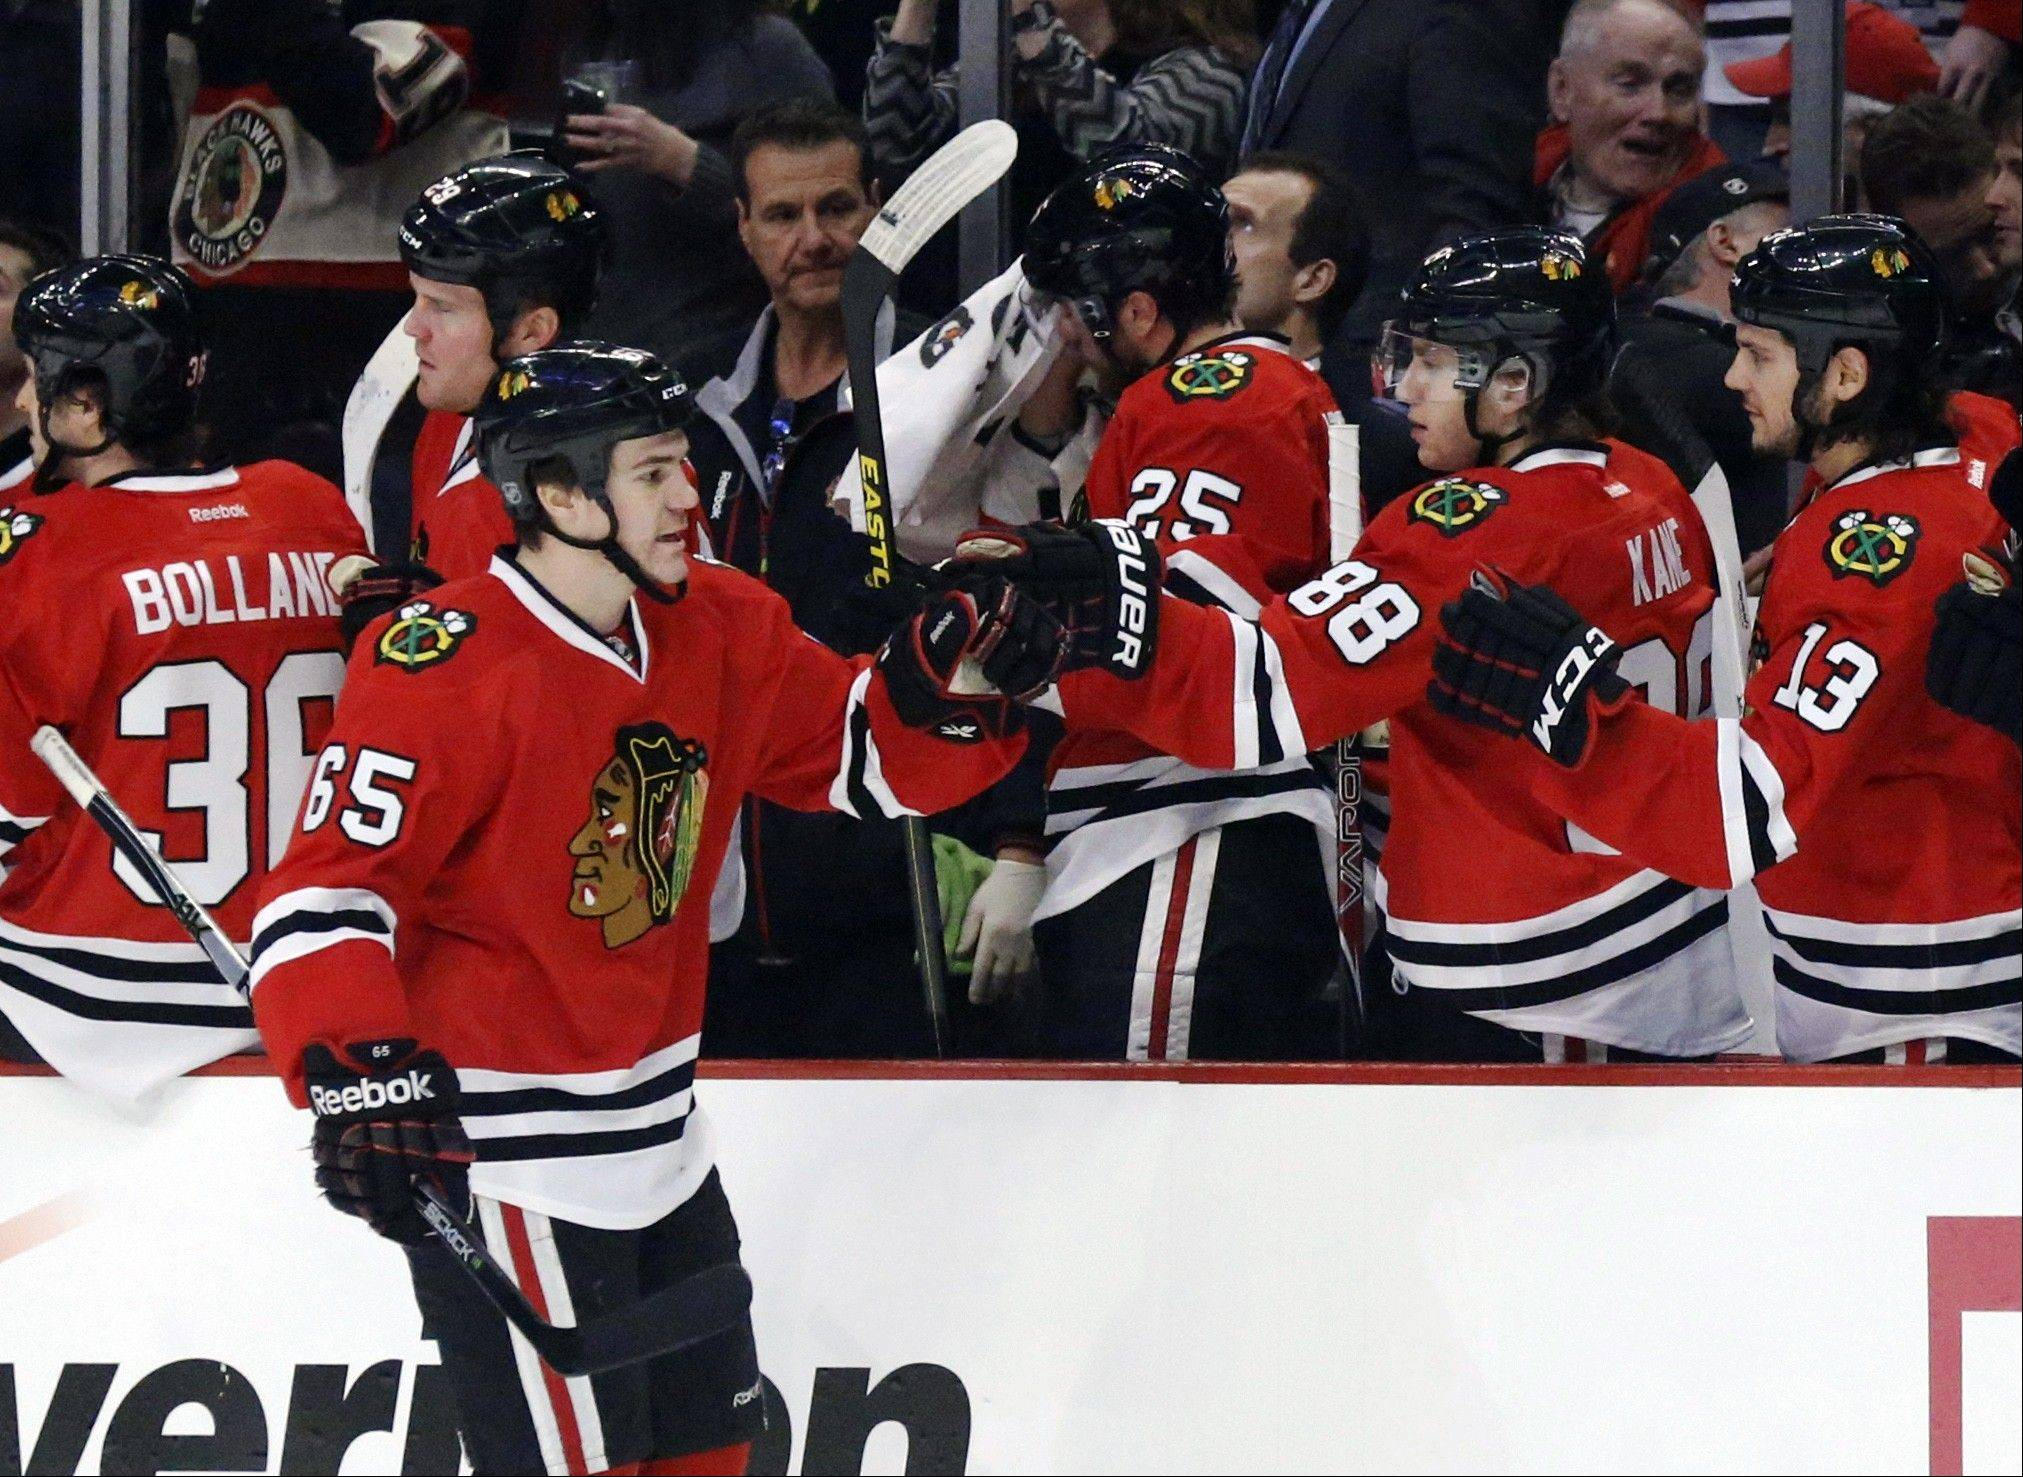 Chicago Blackhawks center Andrew Shaw celebrates his goal with teammates during the first period .